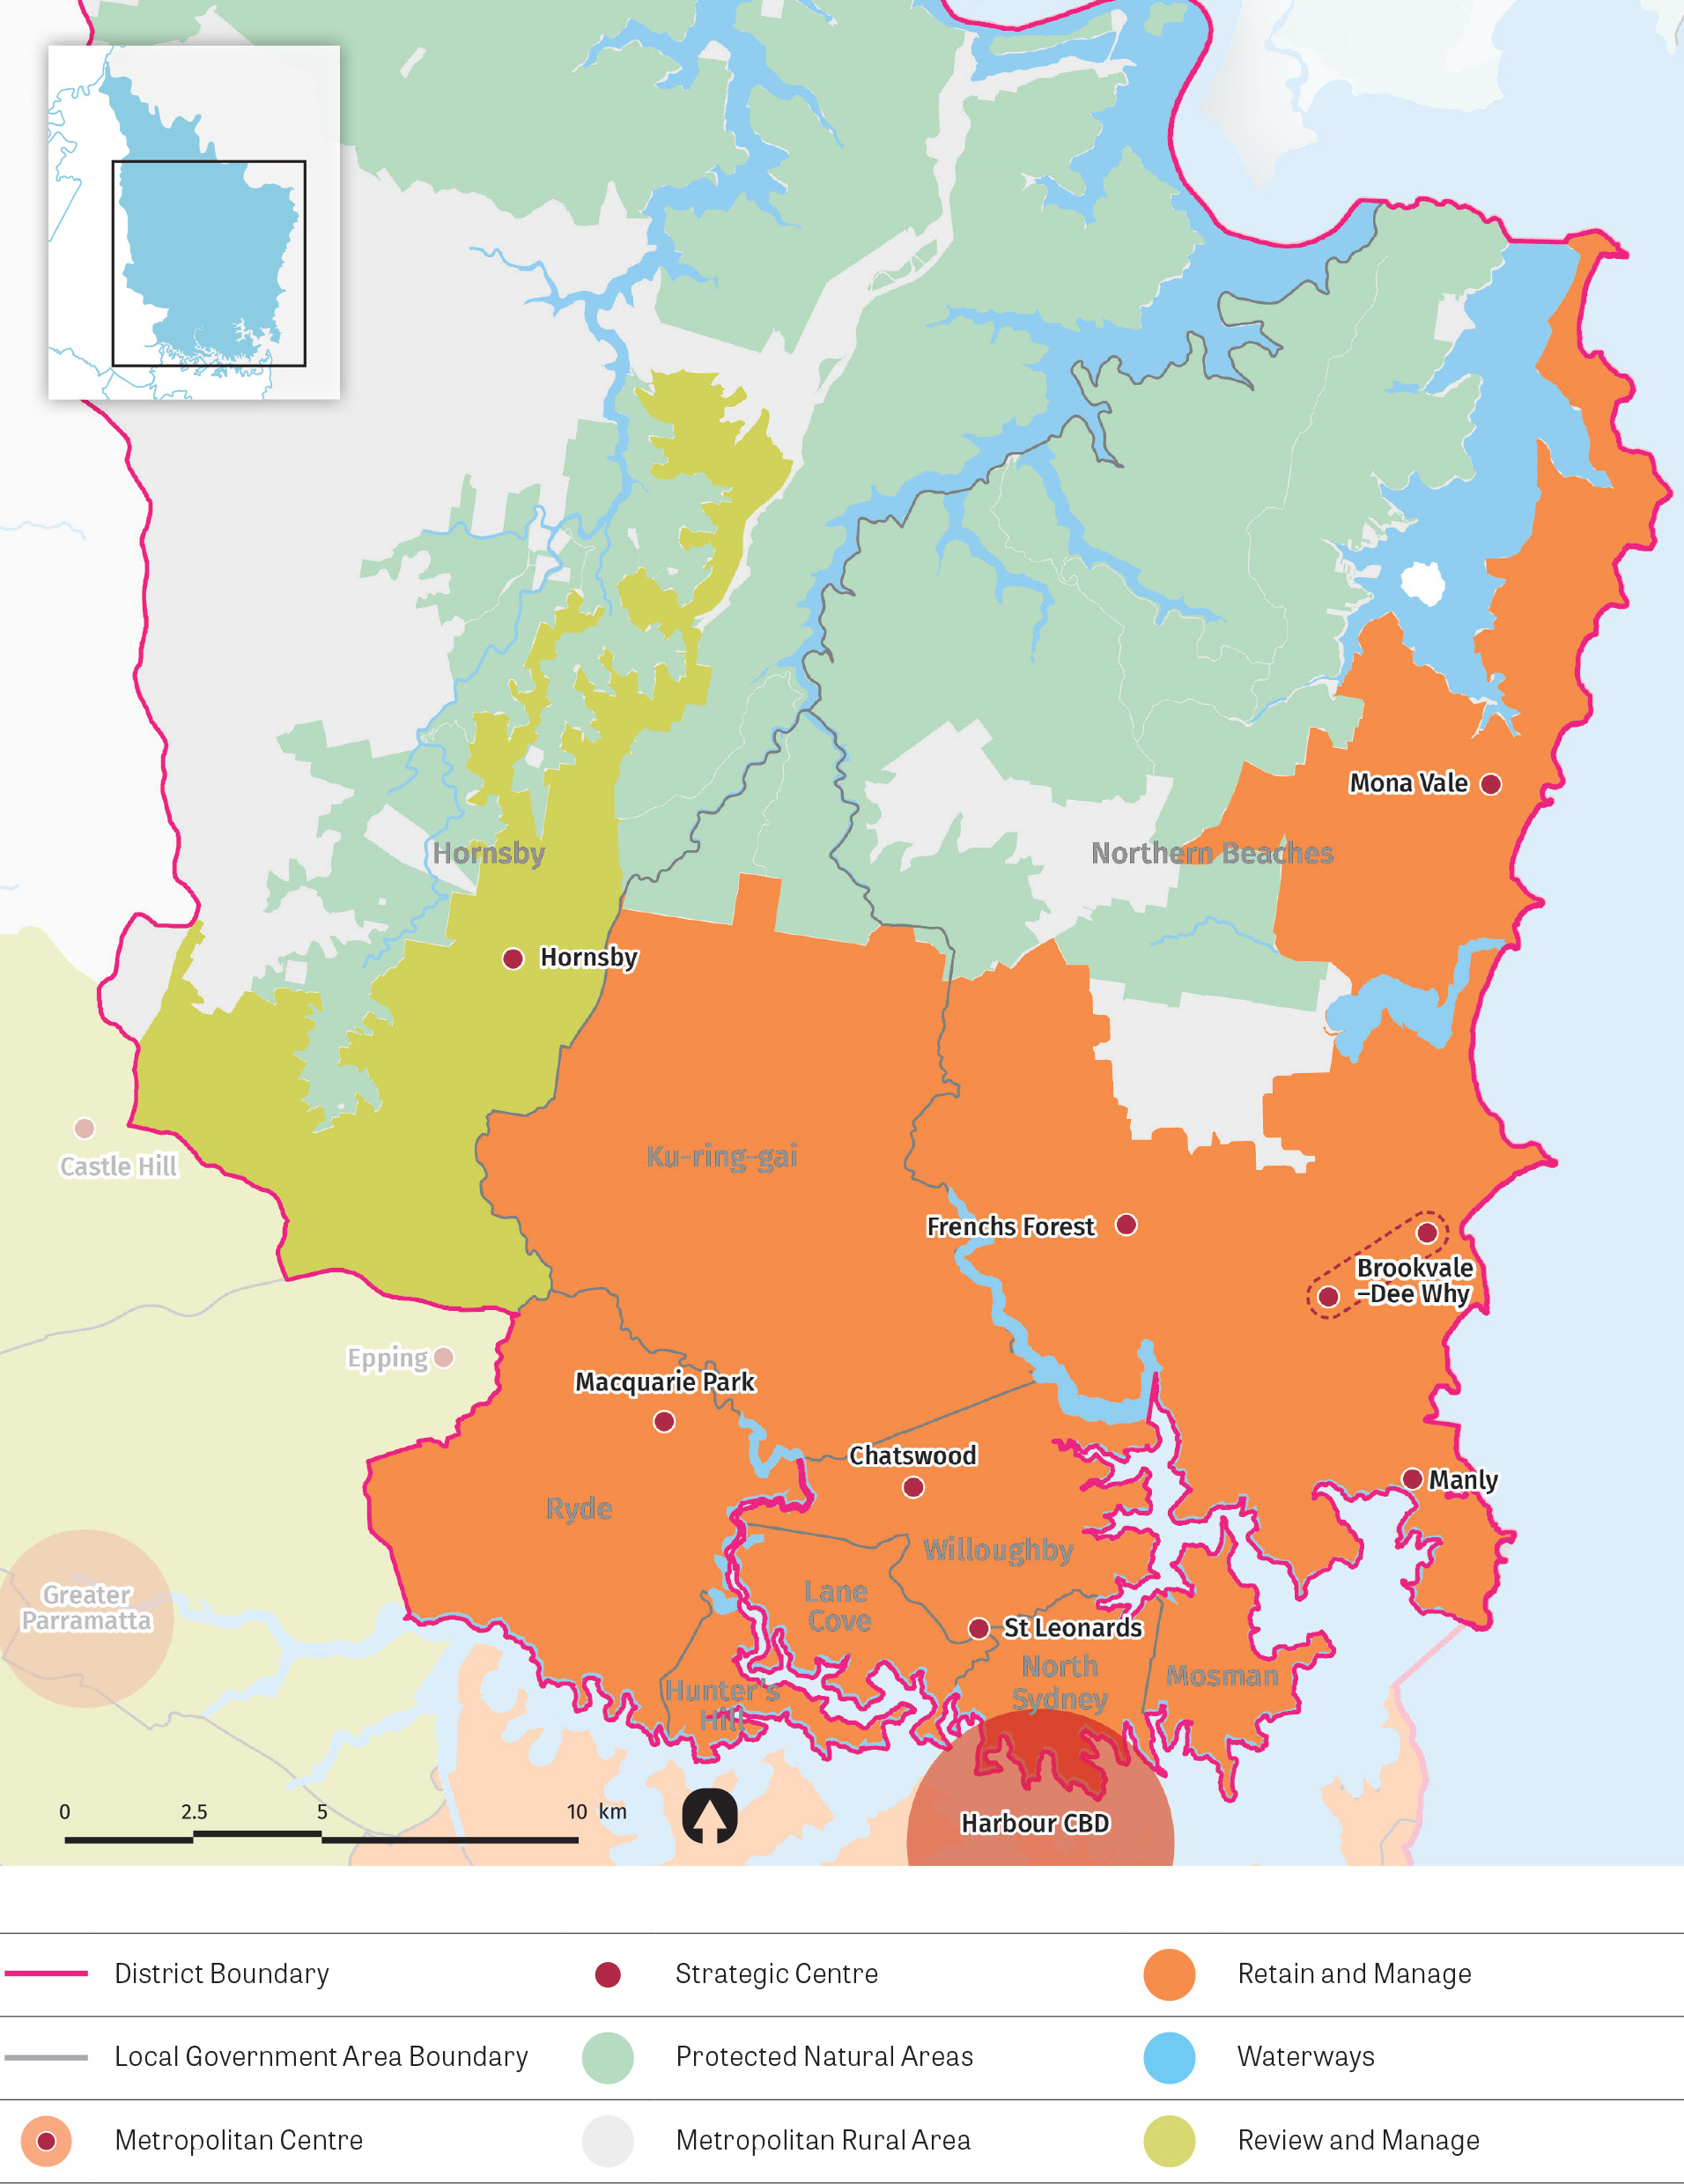 Map depicting industrial land approaches in the district. The map also shows waterways, protected natural areas, metropolitan rural areas and local government area boundaries.